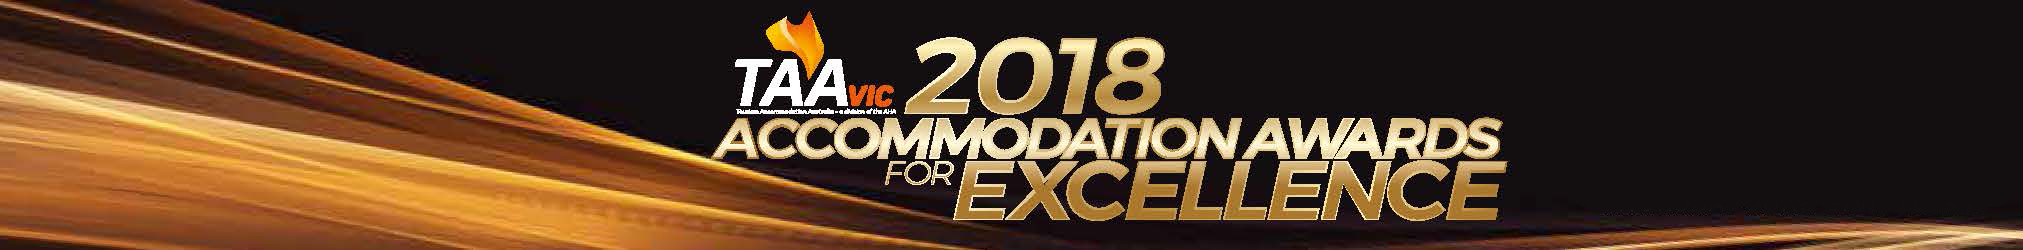 2018 TAA (Vic) Accommodation Awards for Excellence